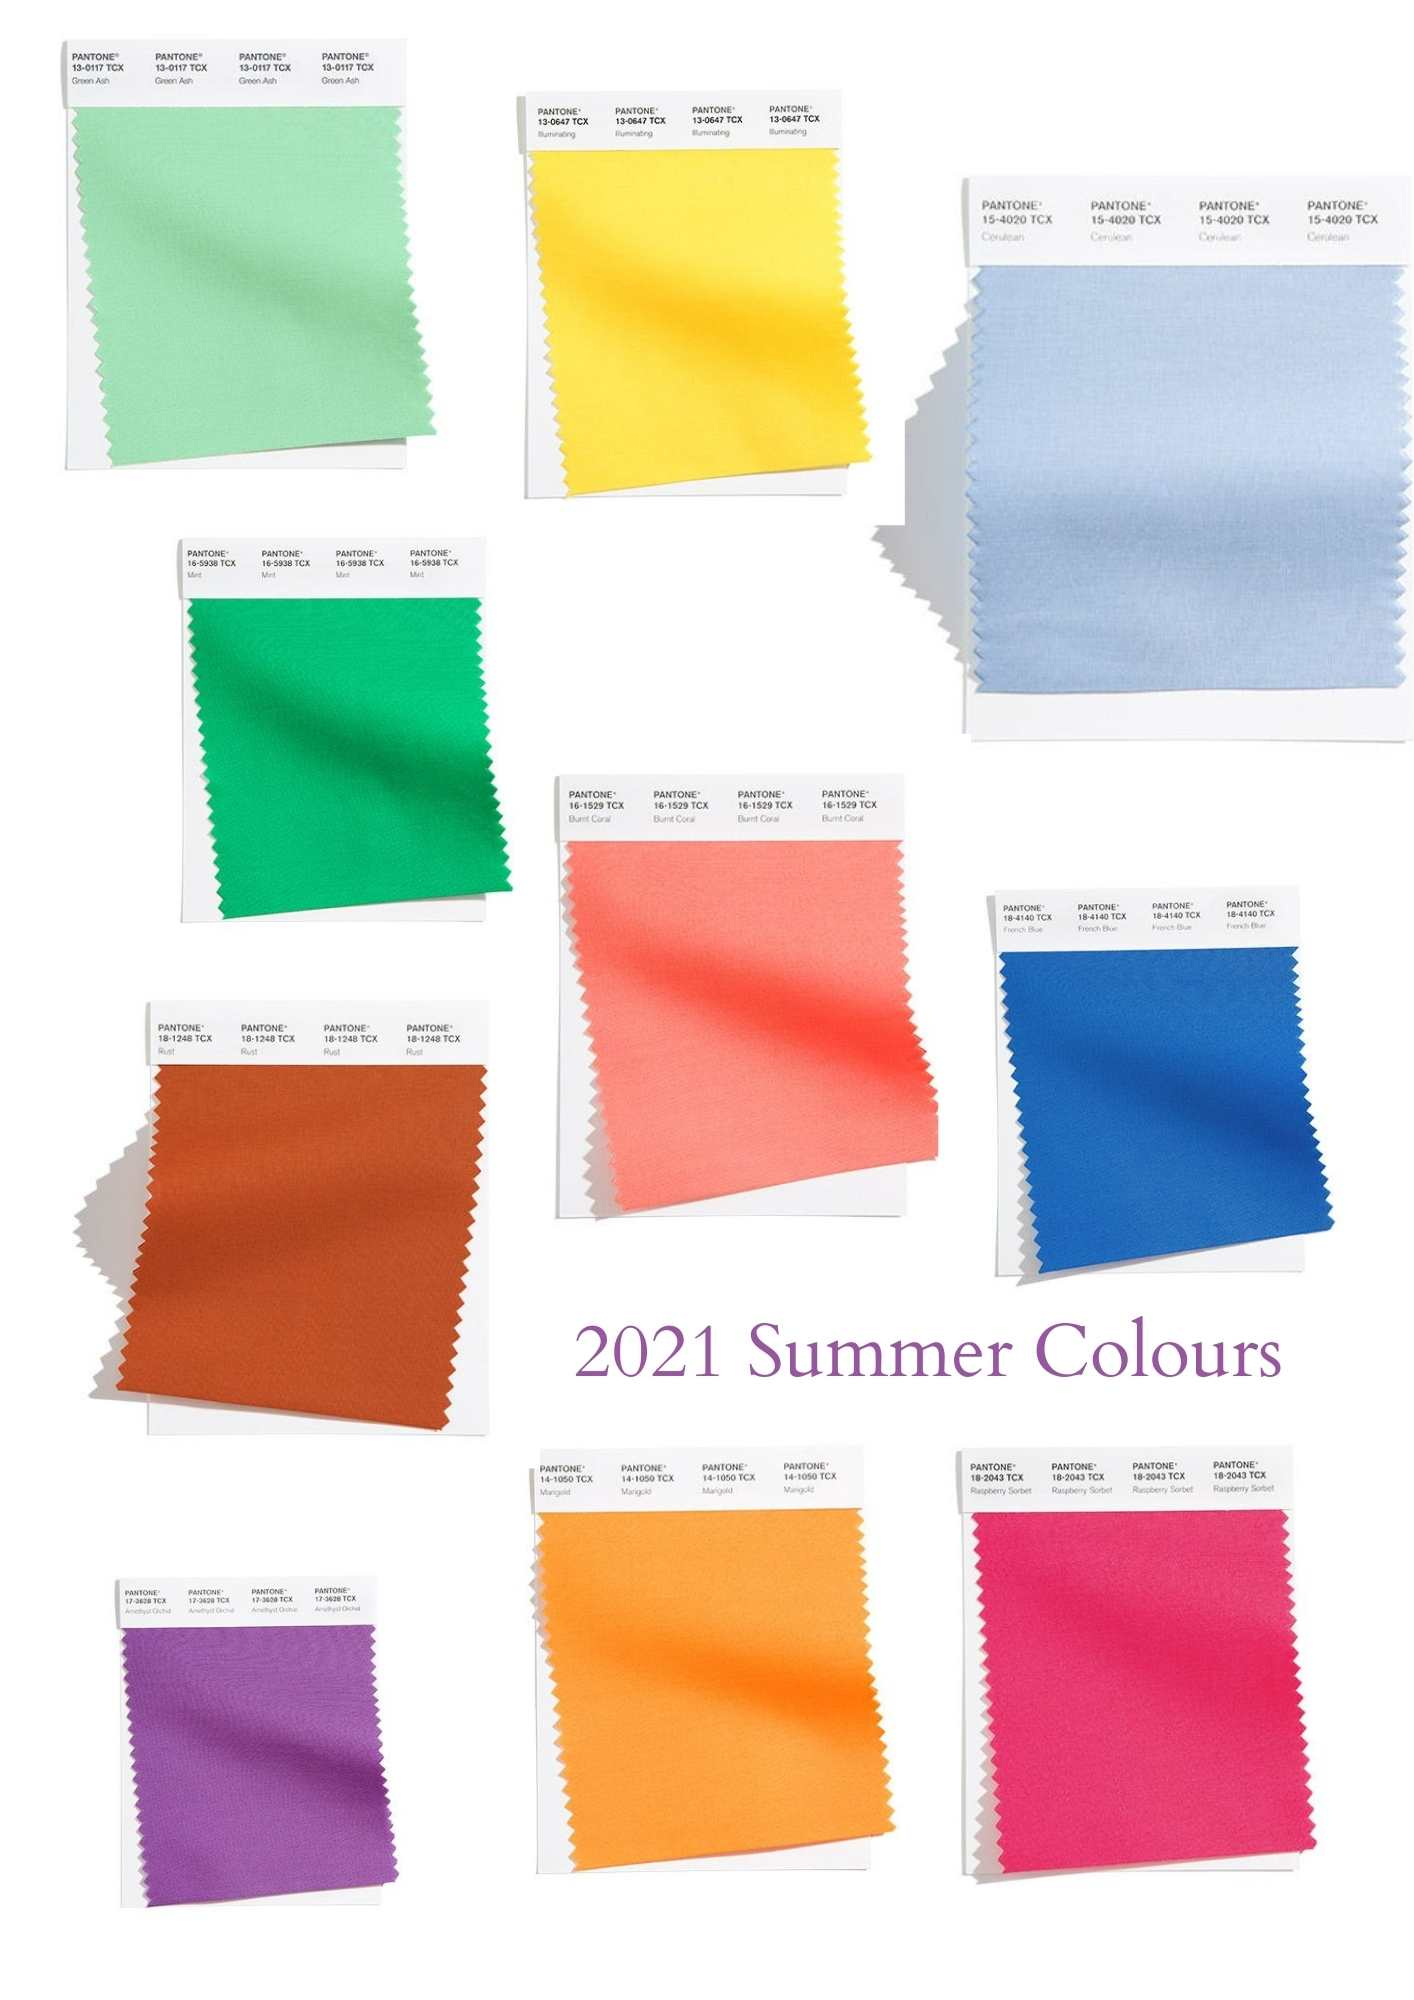 2021 summer colour trends